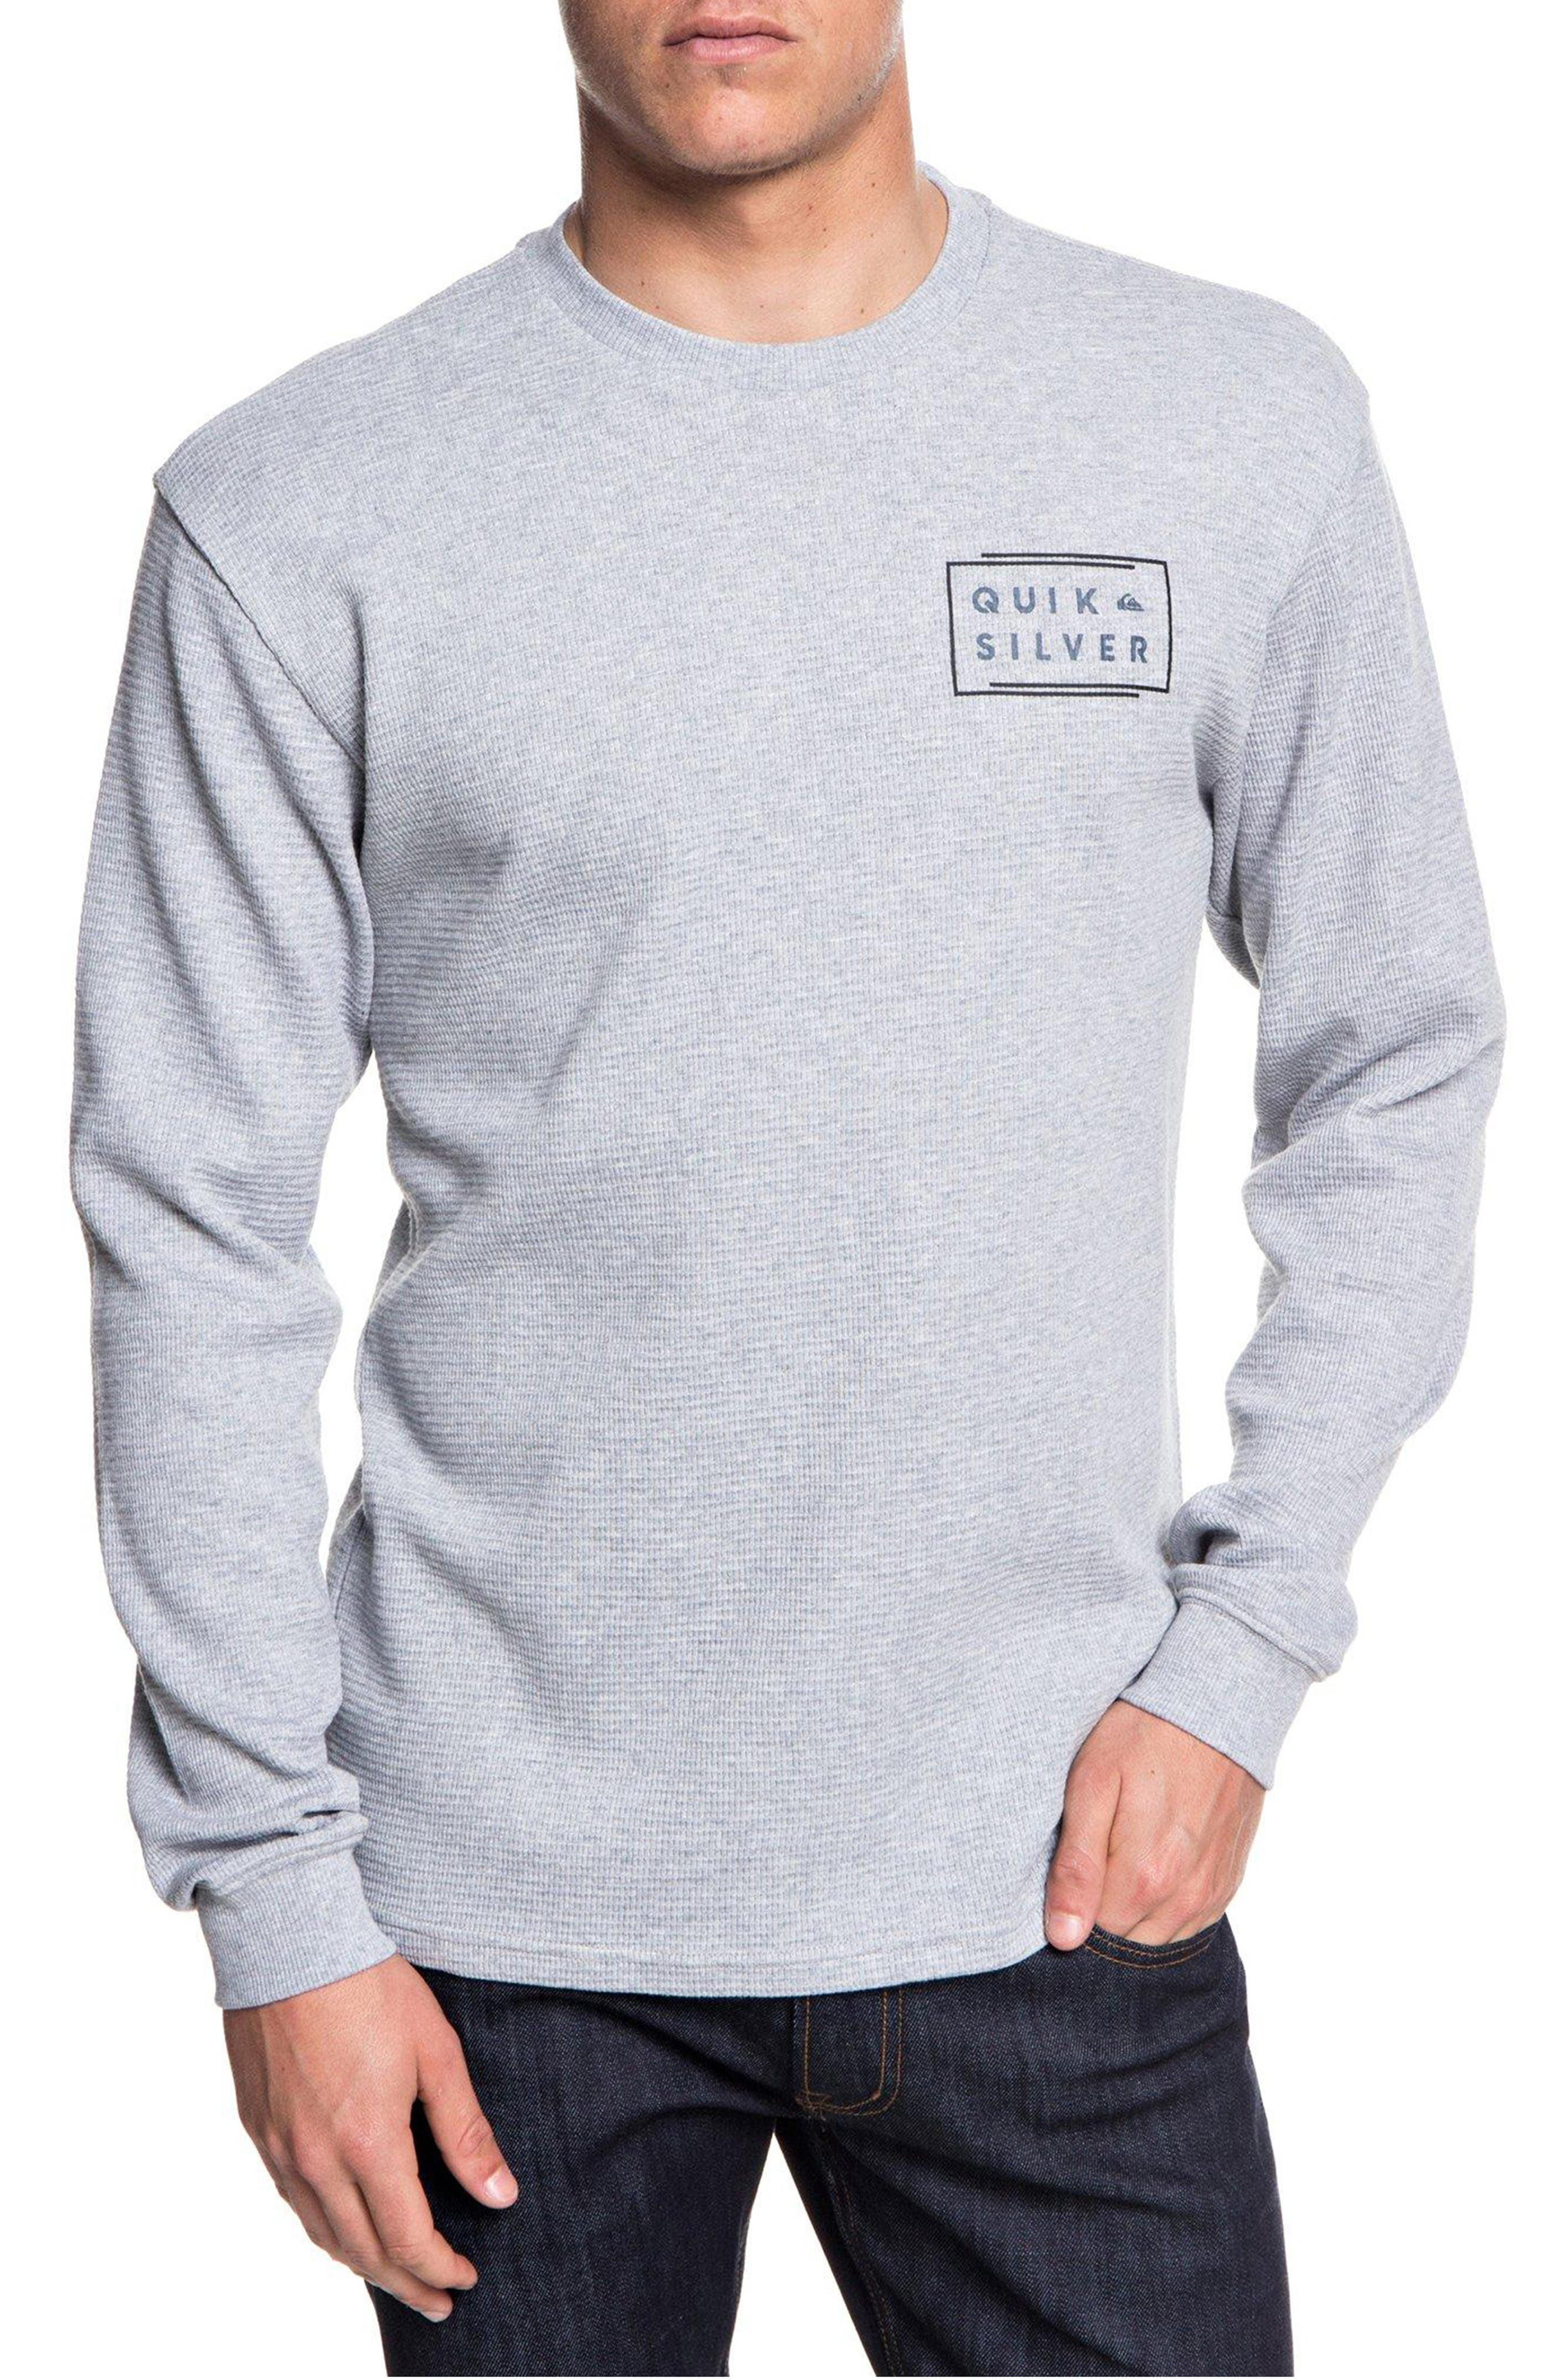 Worldwide Thermal T-Shirt,                         Main,                         color, ATHLETIC HEATHER